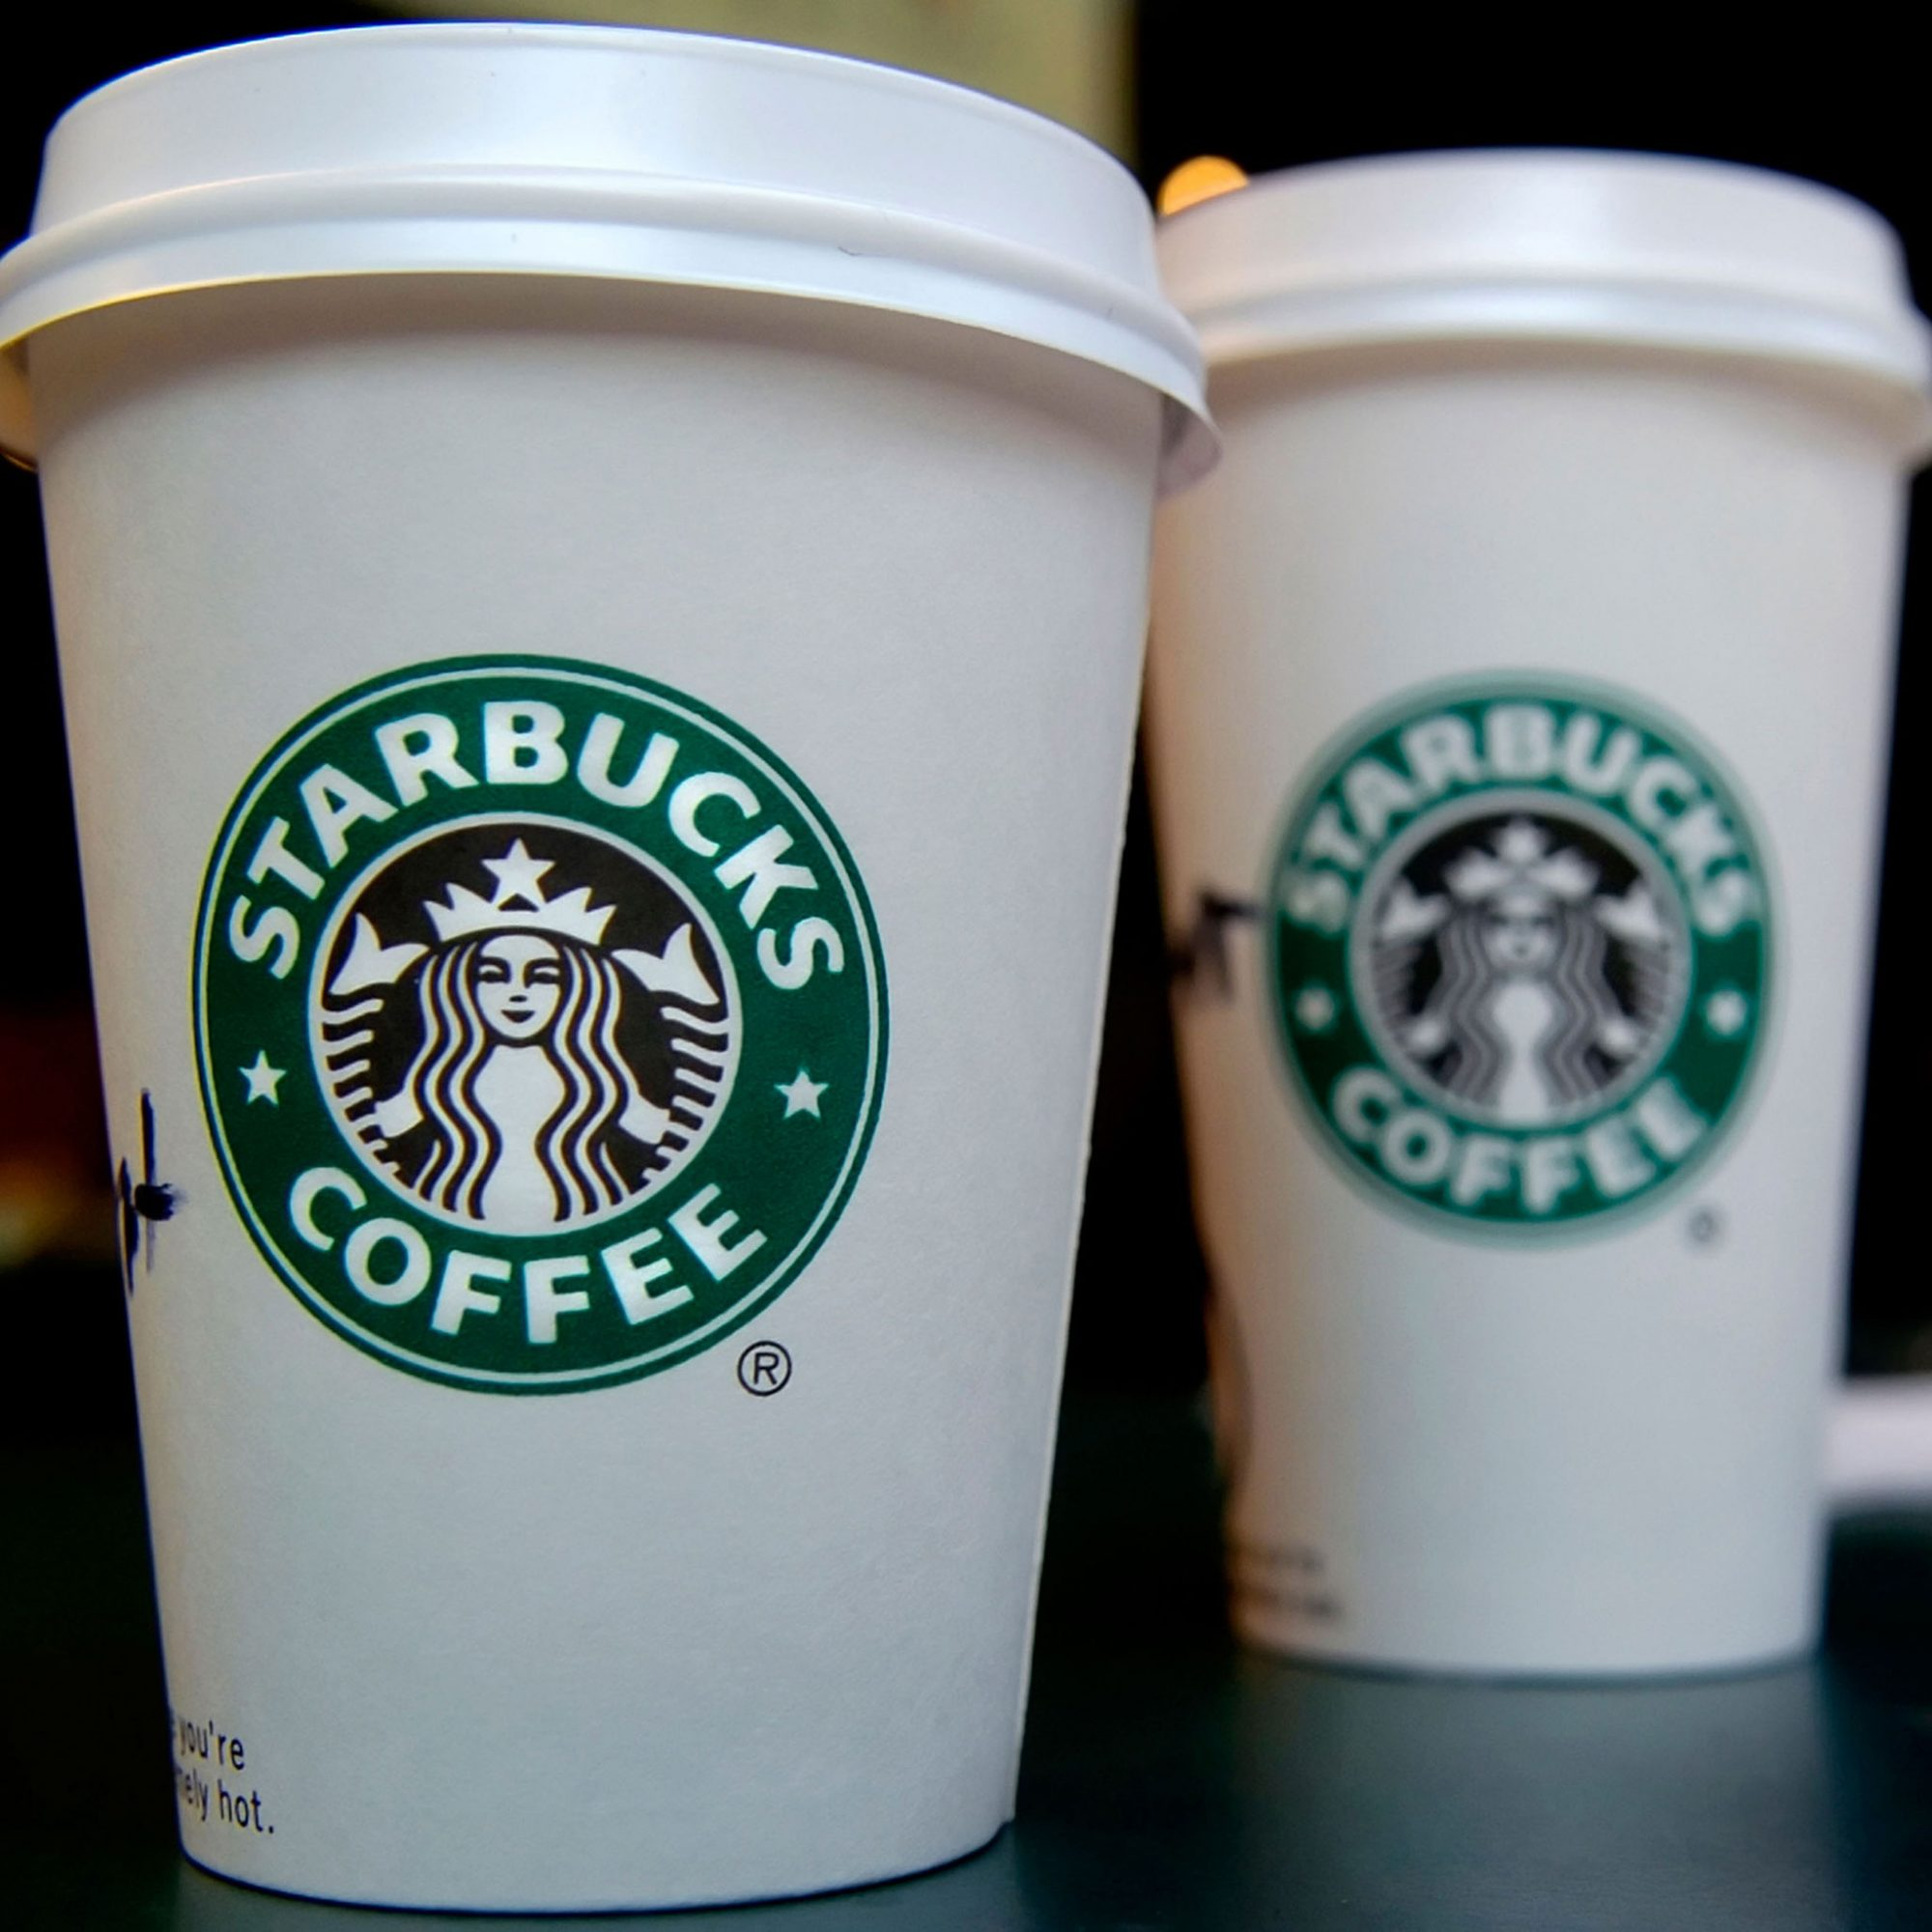 Starbucks Wants to Build the Eataly of Coffee